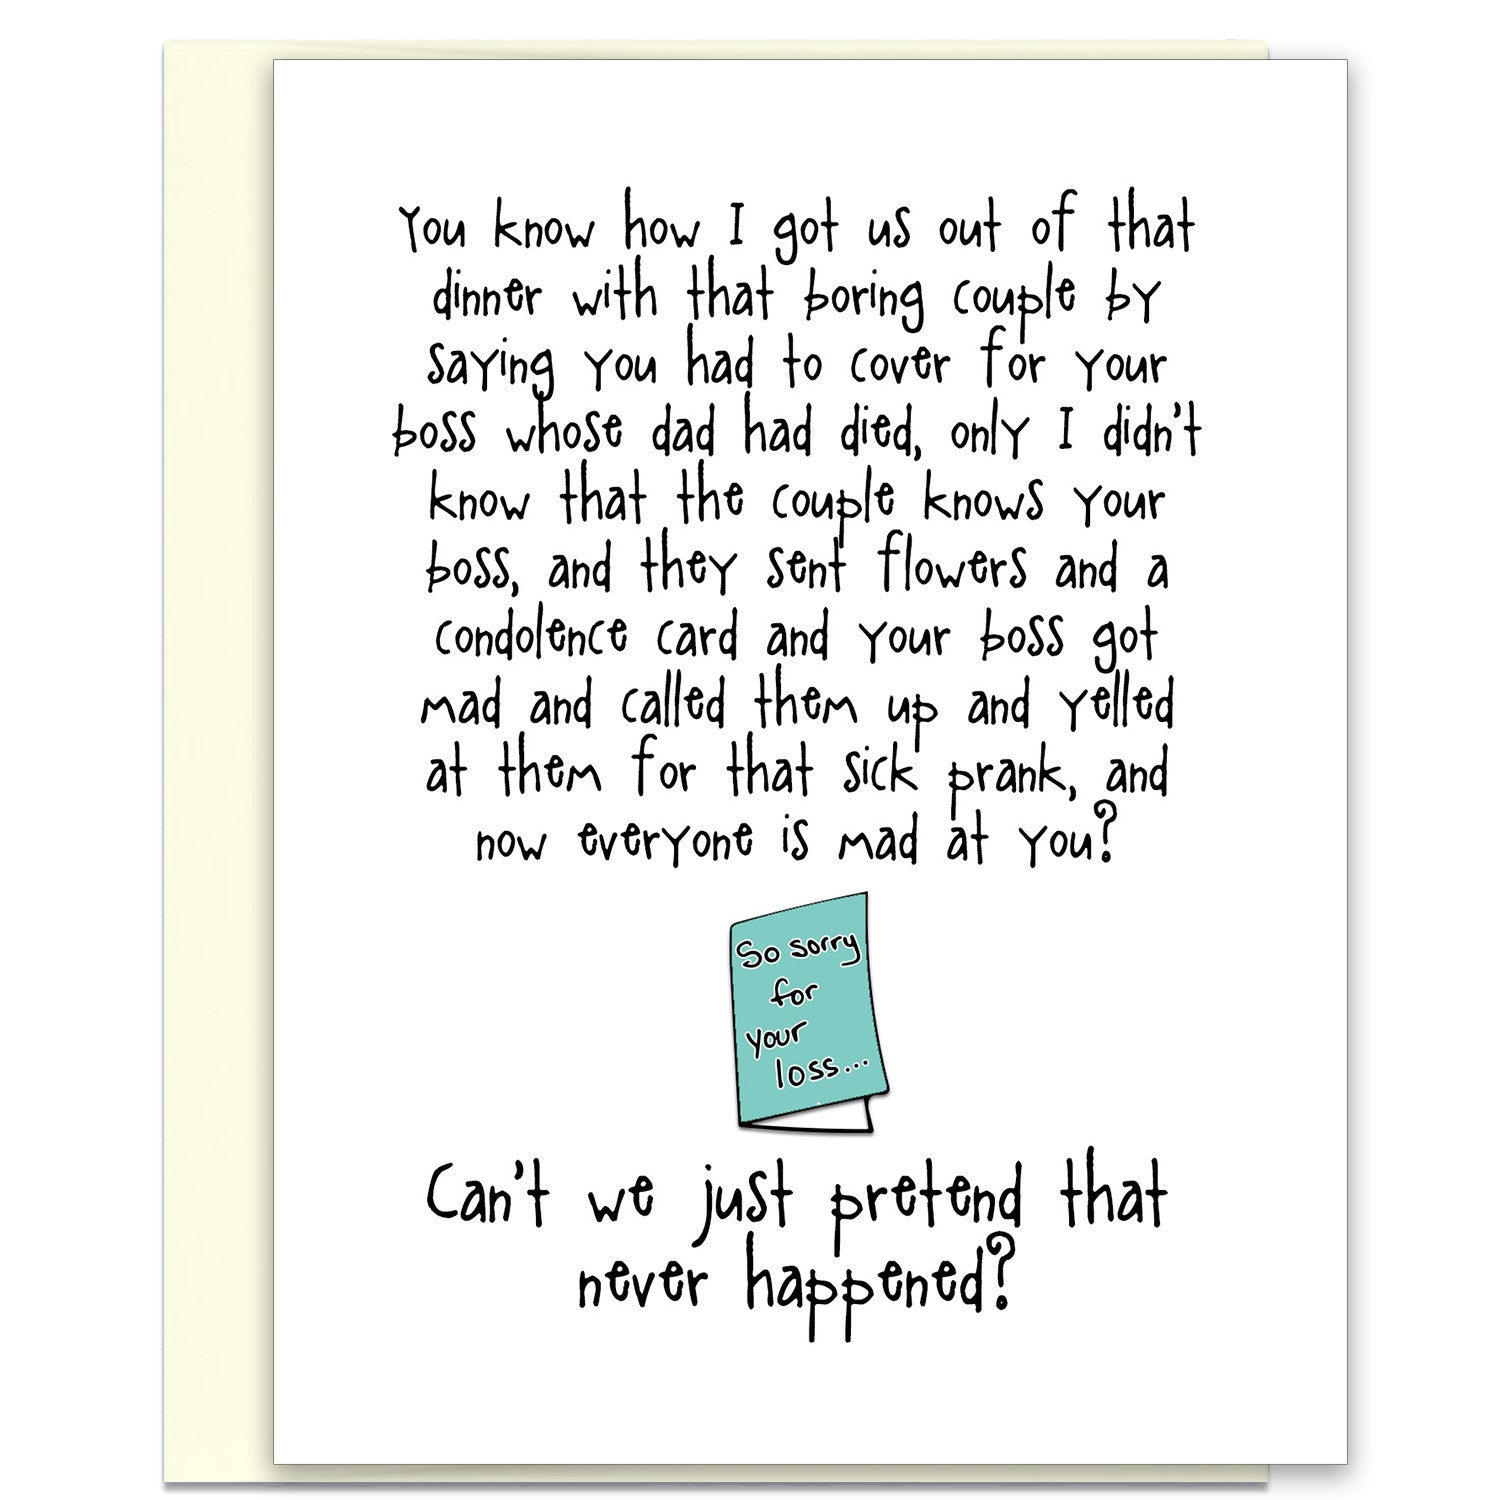 Funny and kind of terrible card condolence card katmariacastudio funny and kind of terrible card condolence card katmariacastudio 1 altavistaventures Images